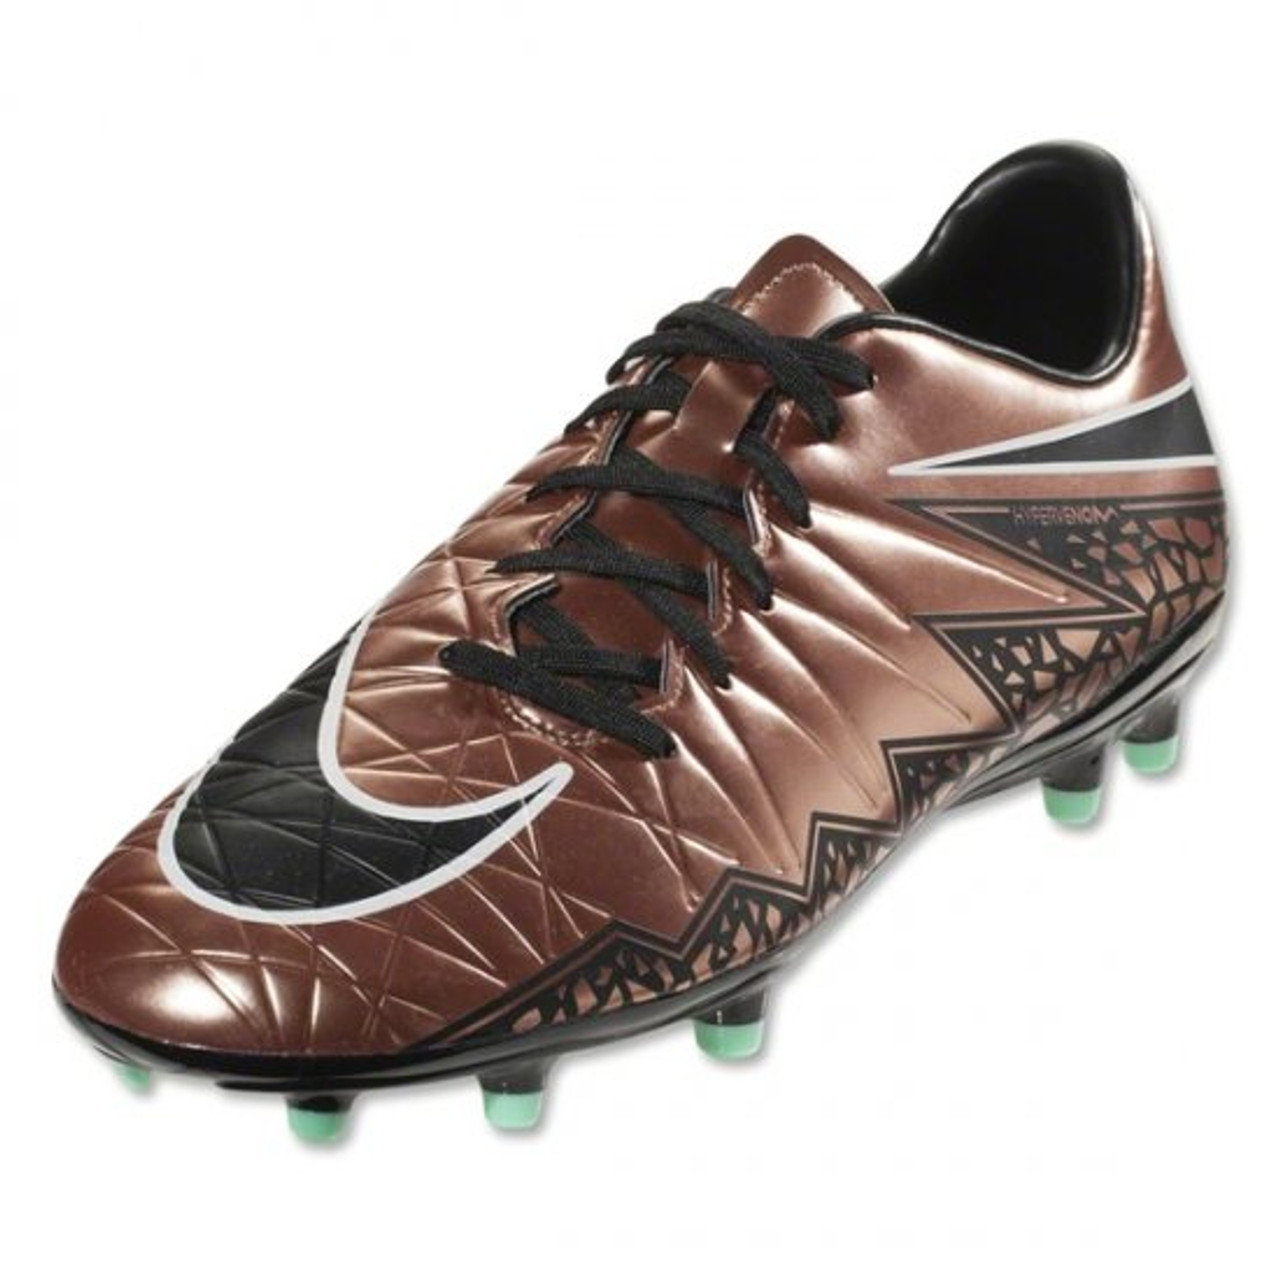 new products 67e3c c4d66 Nike Hypervenom Phelon II FG - Metallic Red Brown Green Black Glow White  (11319) SD - ohp soccer